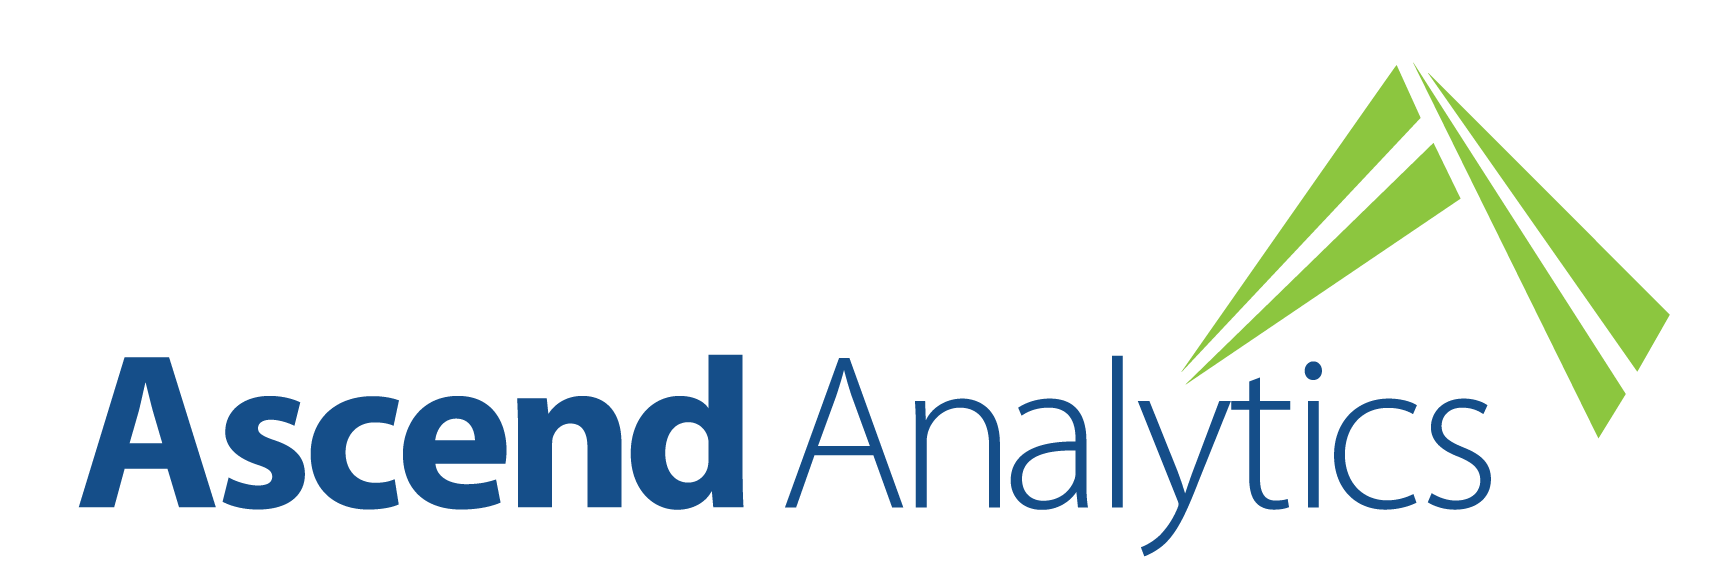 Energy Analytics Software & Consulting